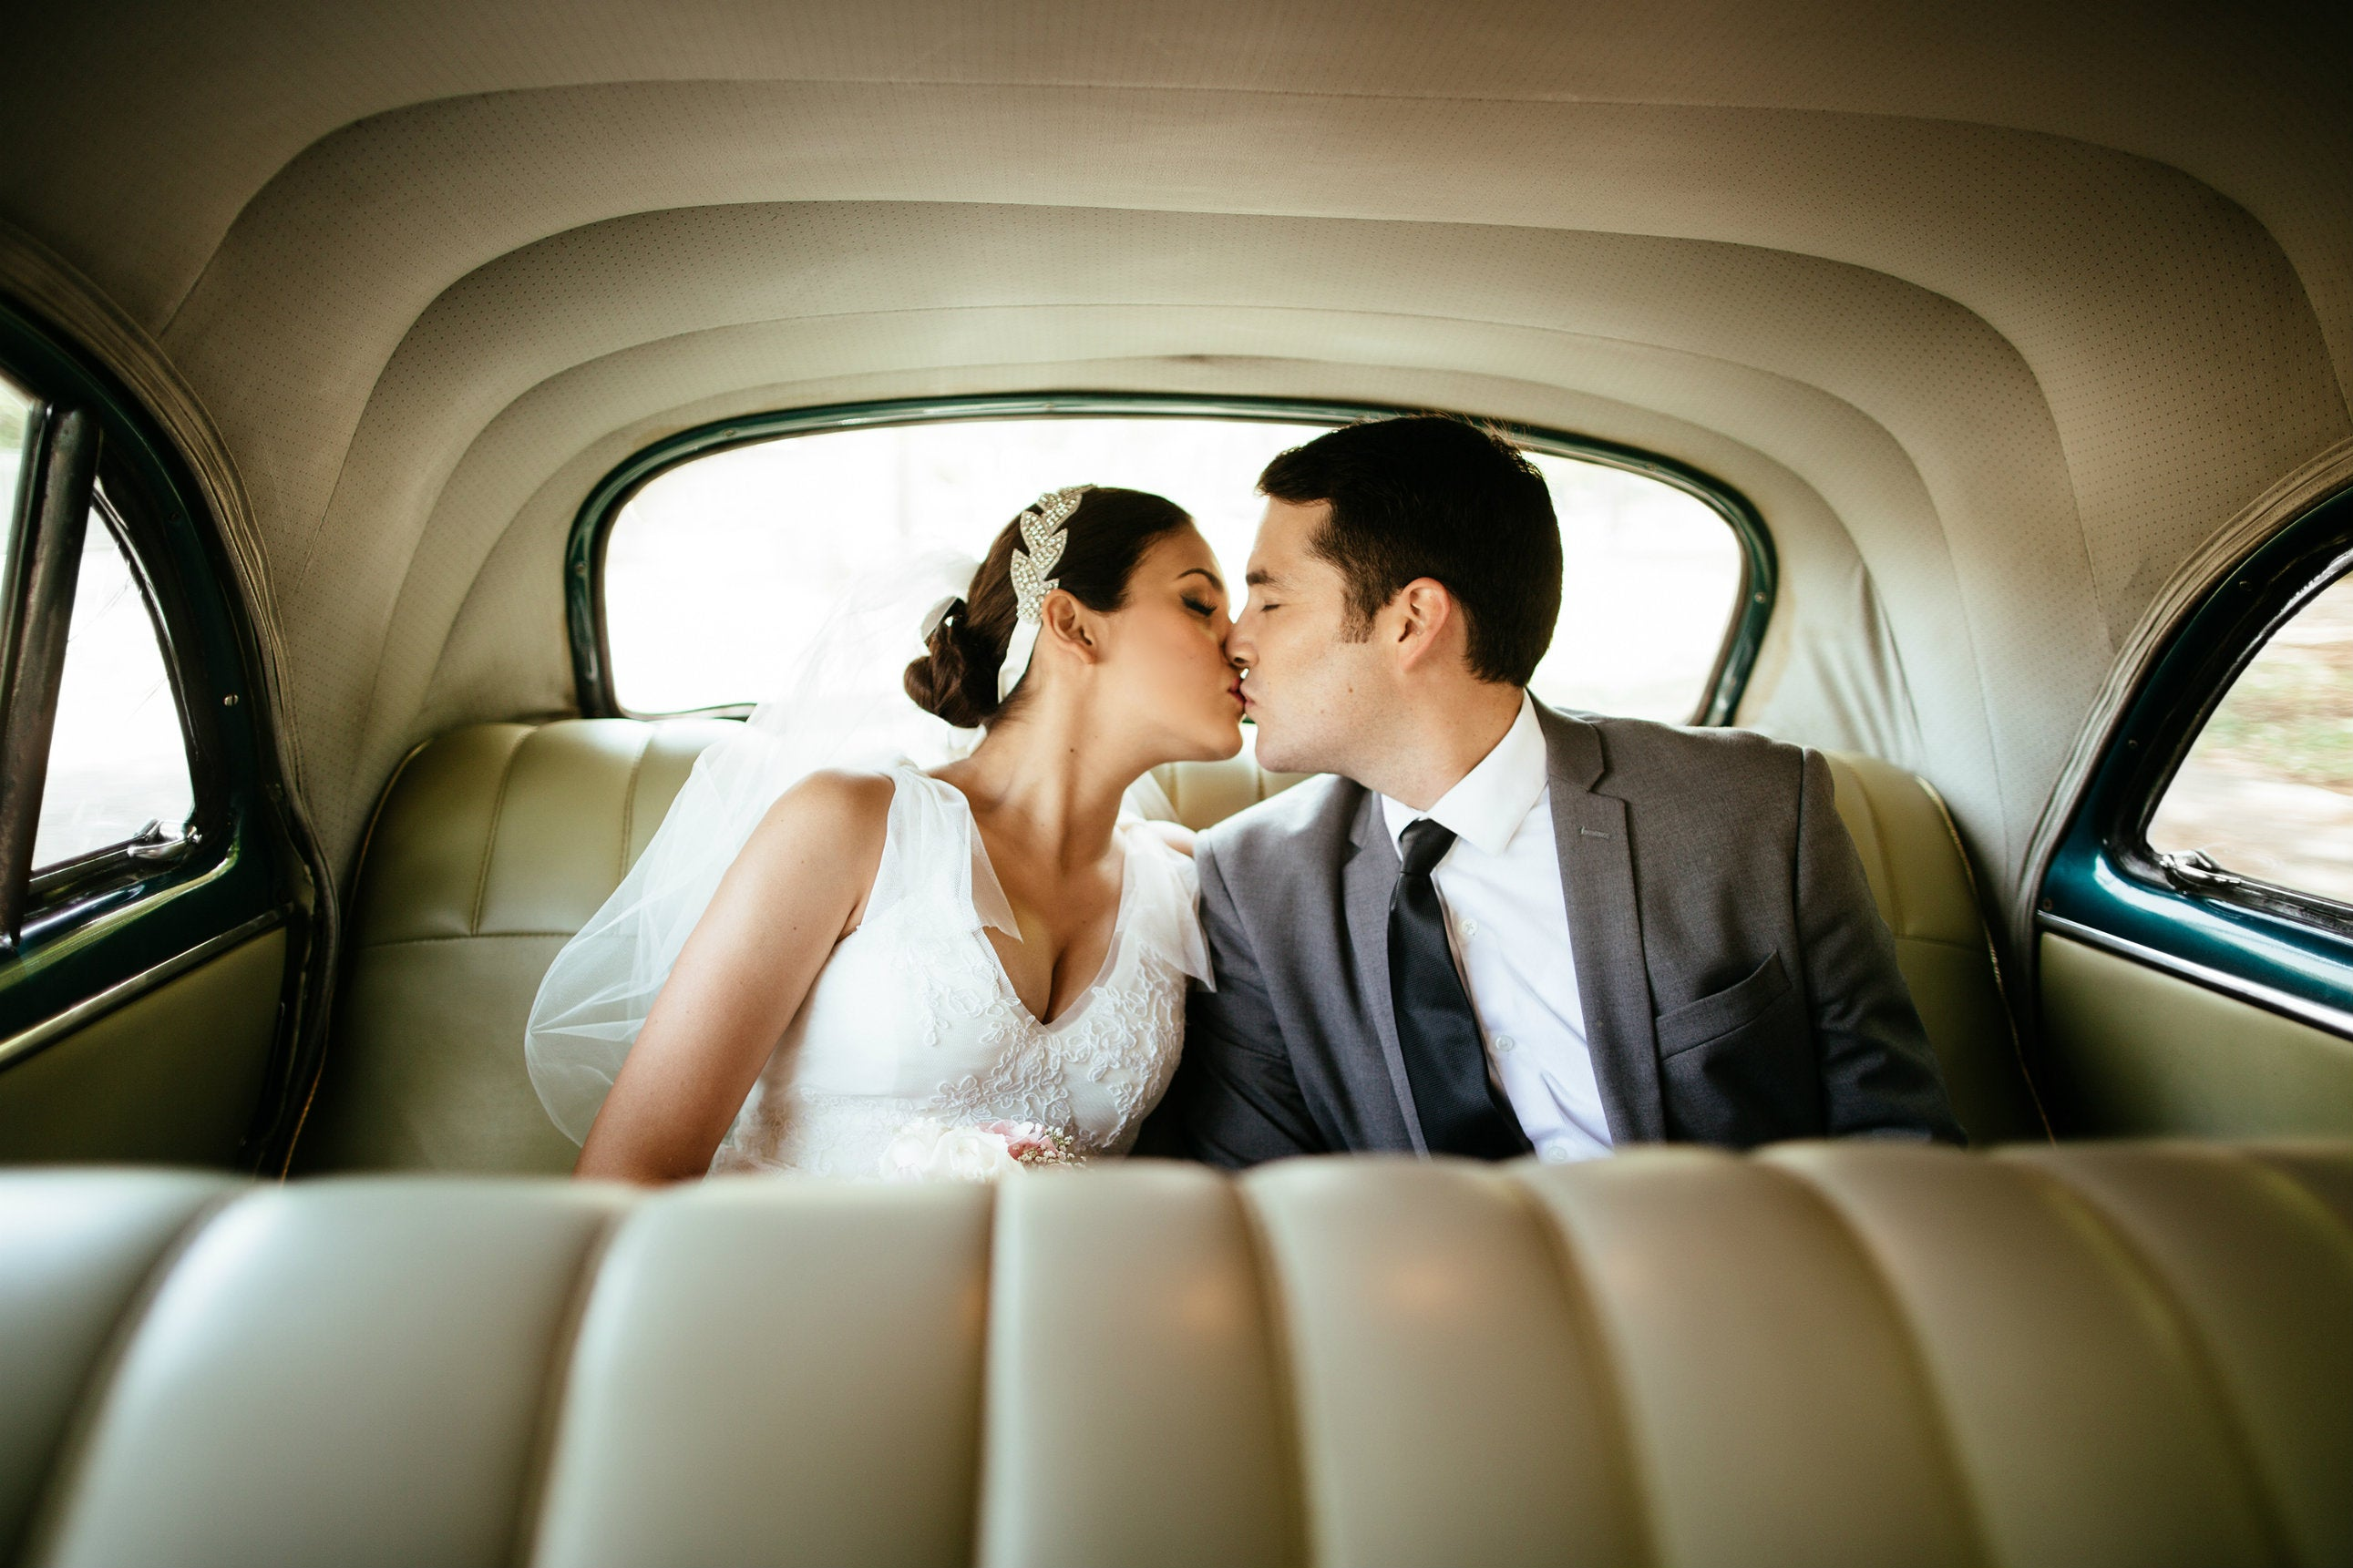 4 Credit Cards To Help Fund Your Wedding